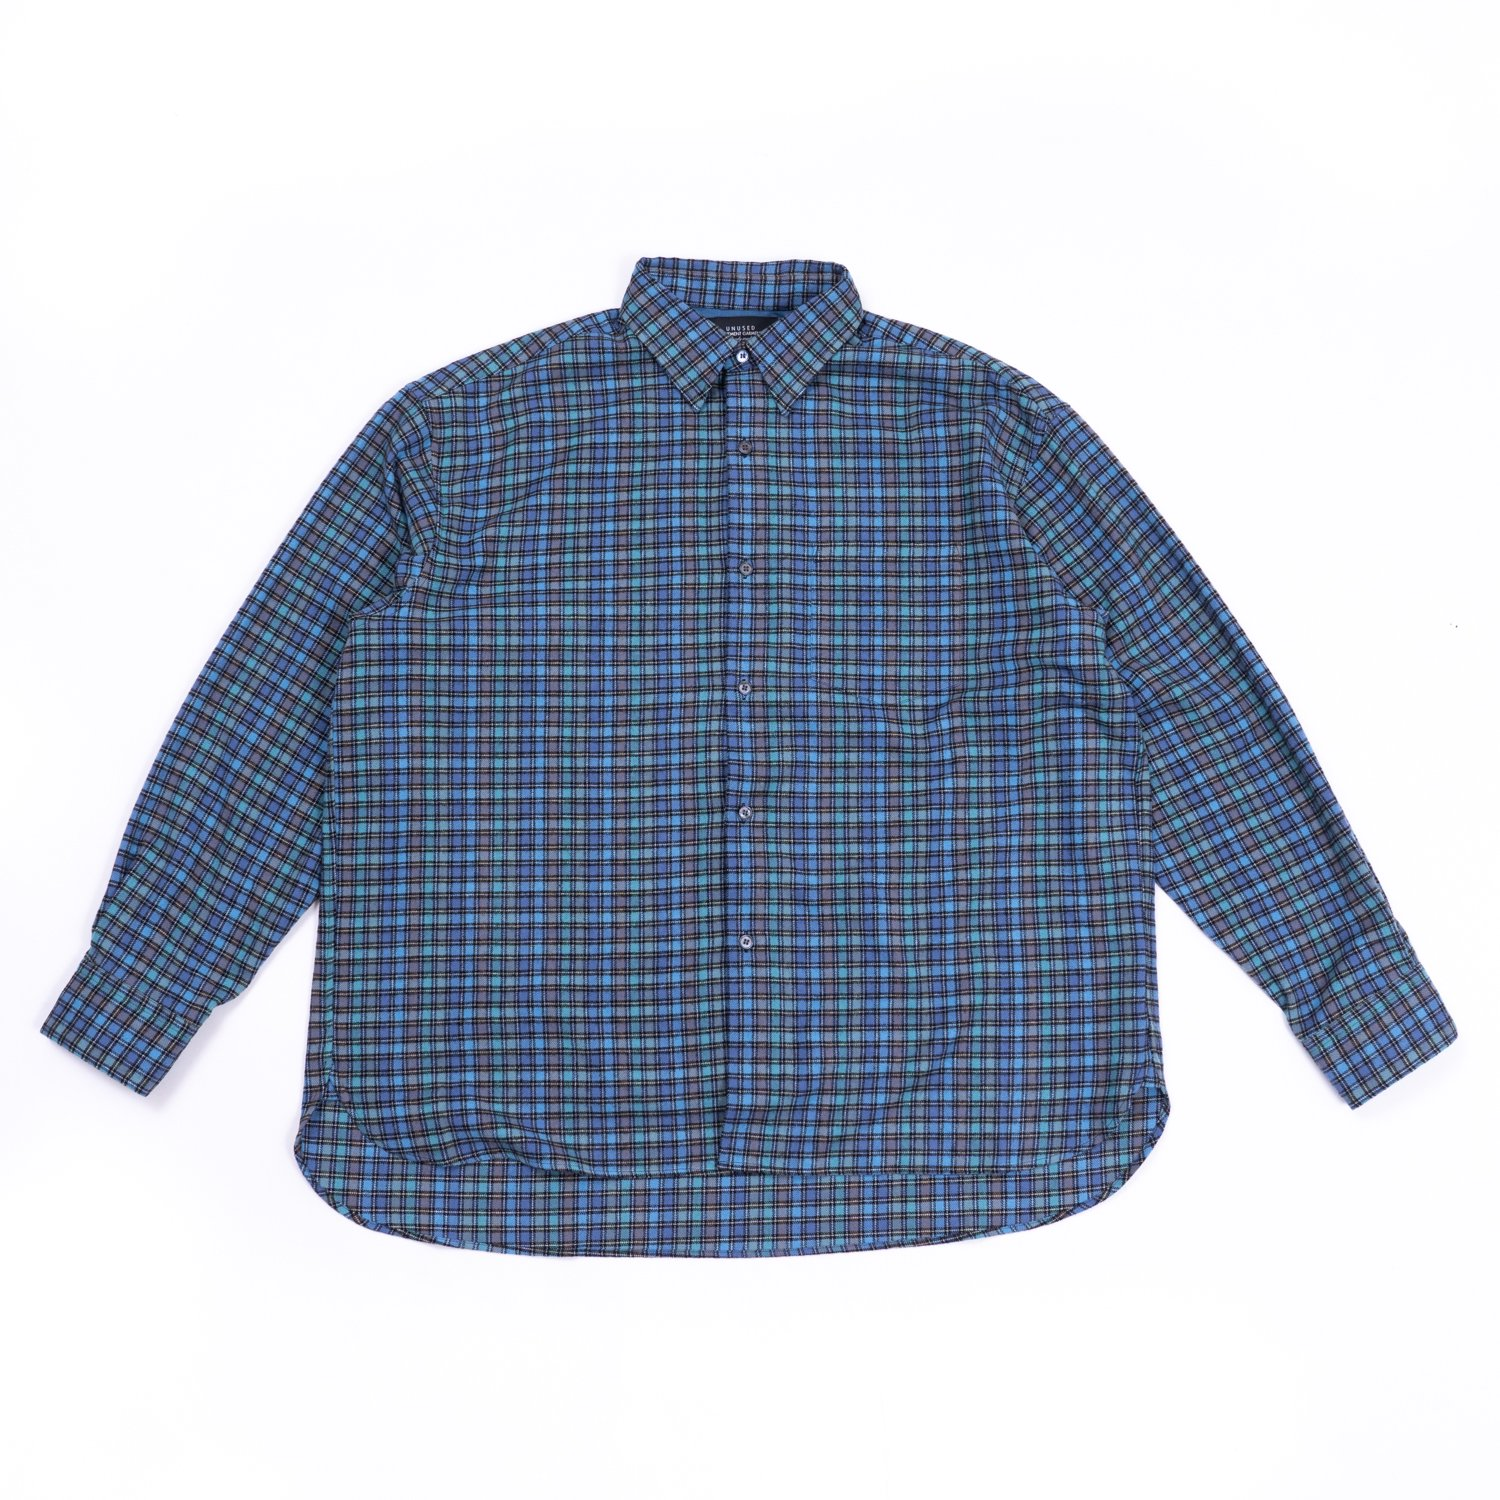 UNUSED * US2090 Check Flannel Shirt * Blue/Green